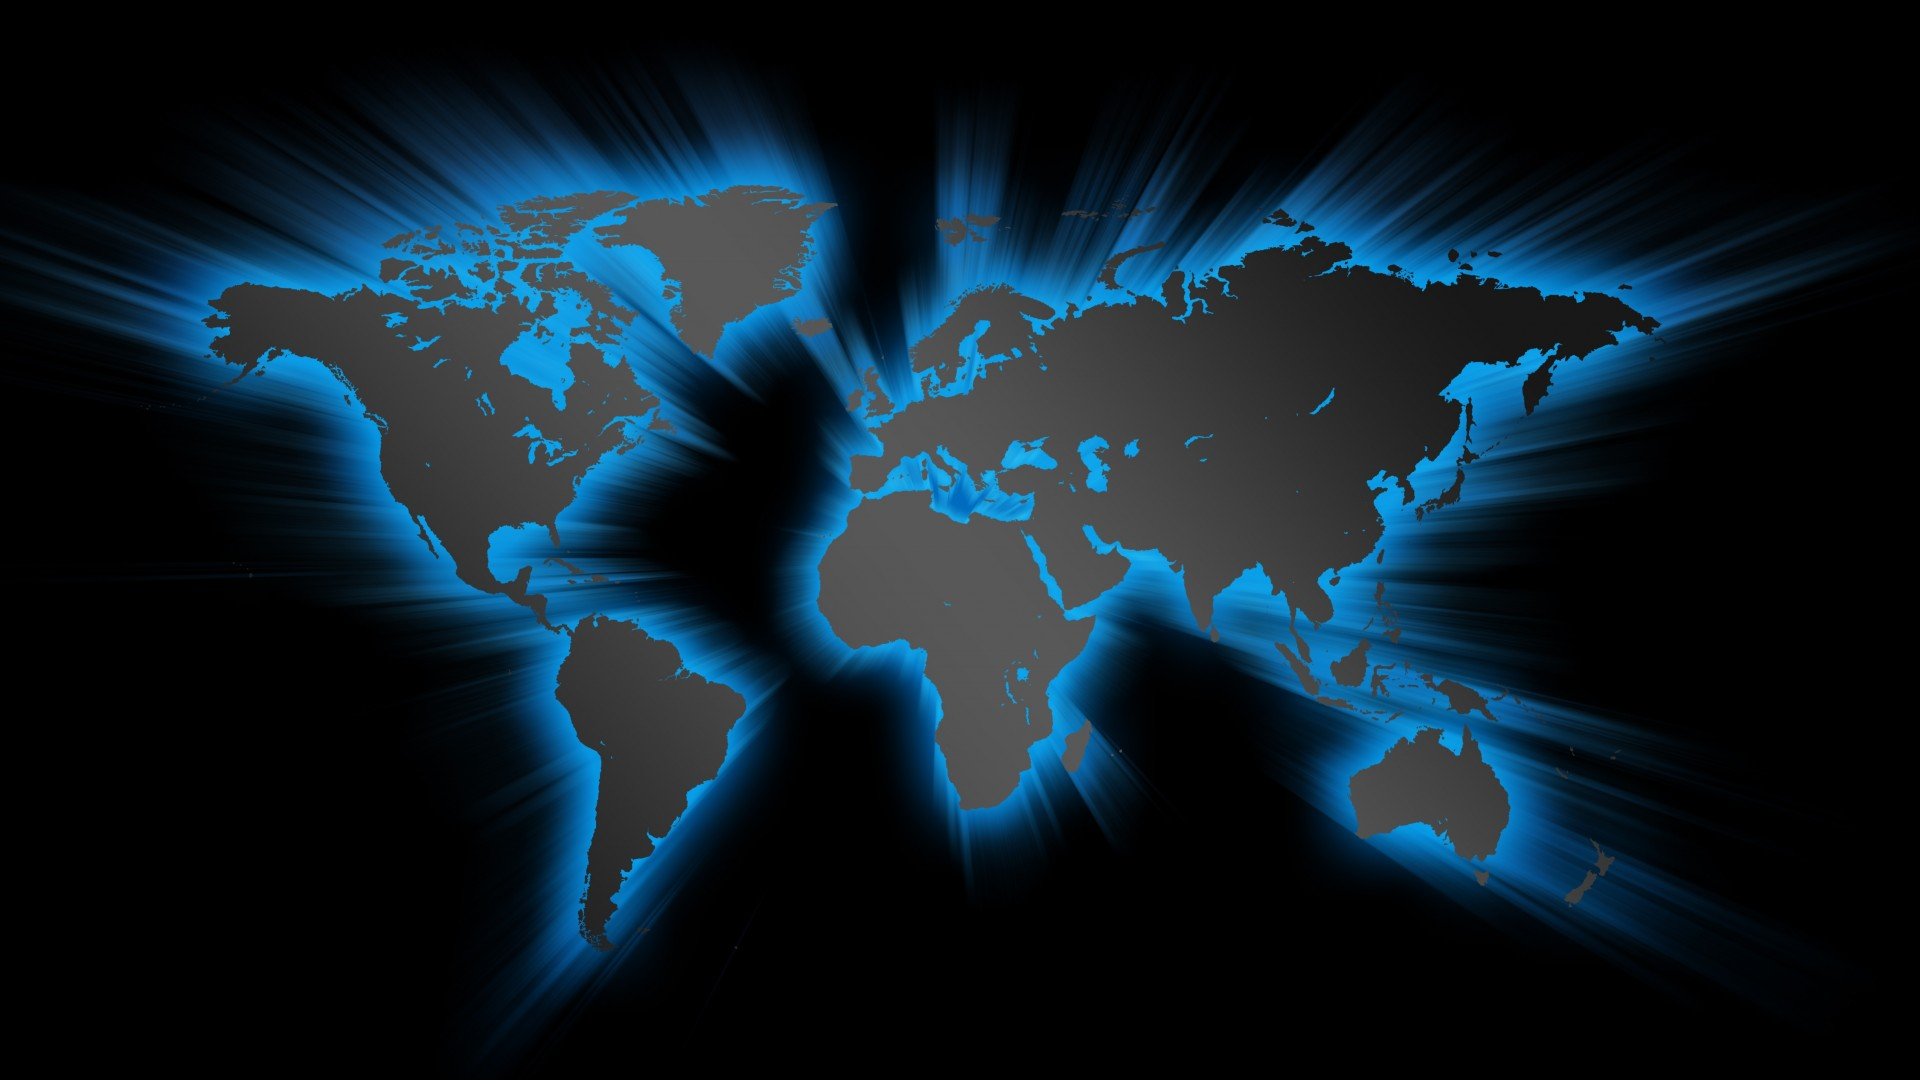 Blue effect world map hd wallpapers blue effect world map hd wallpaper gumiabroncs Gallery